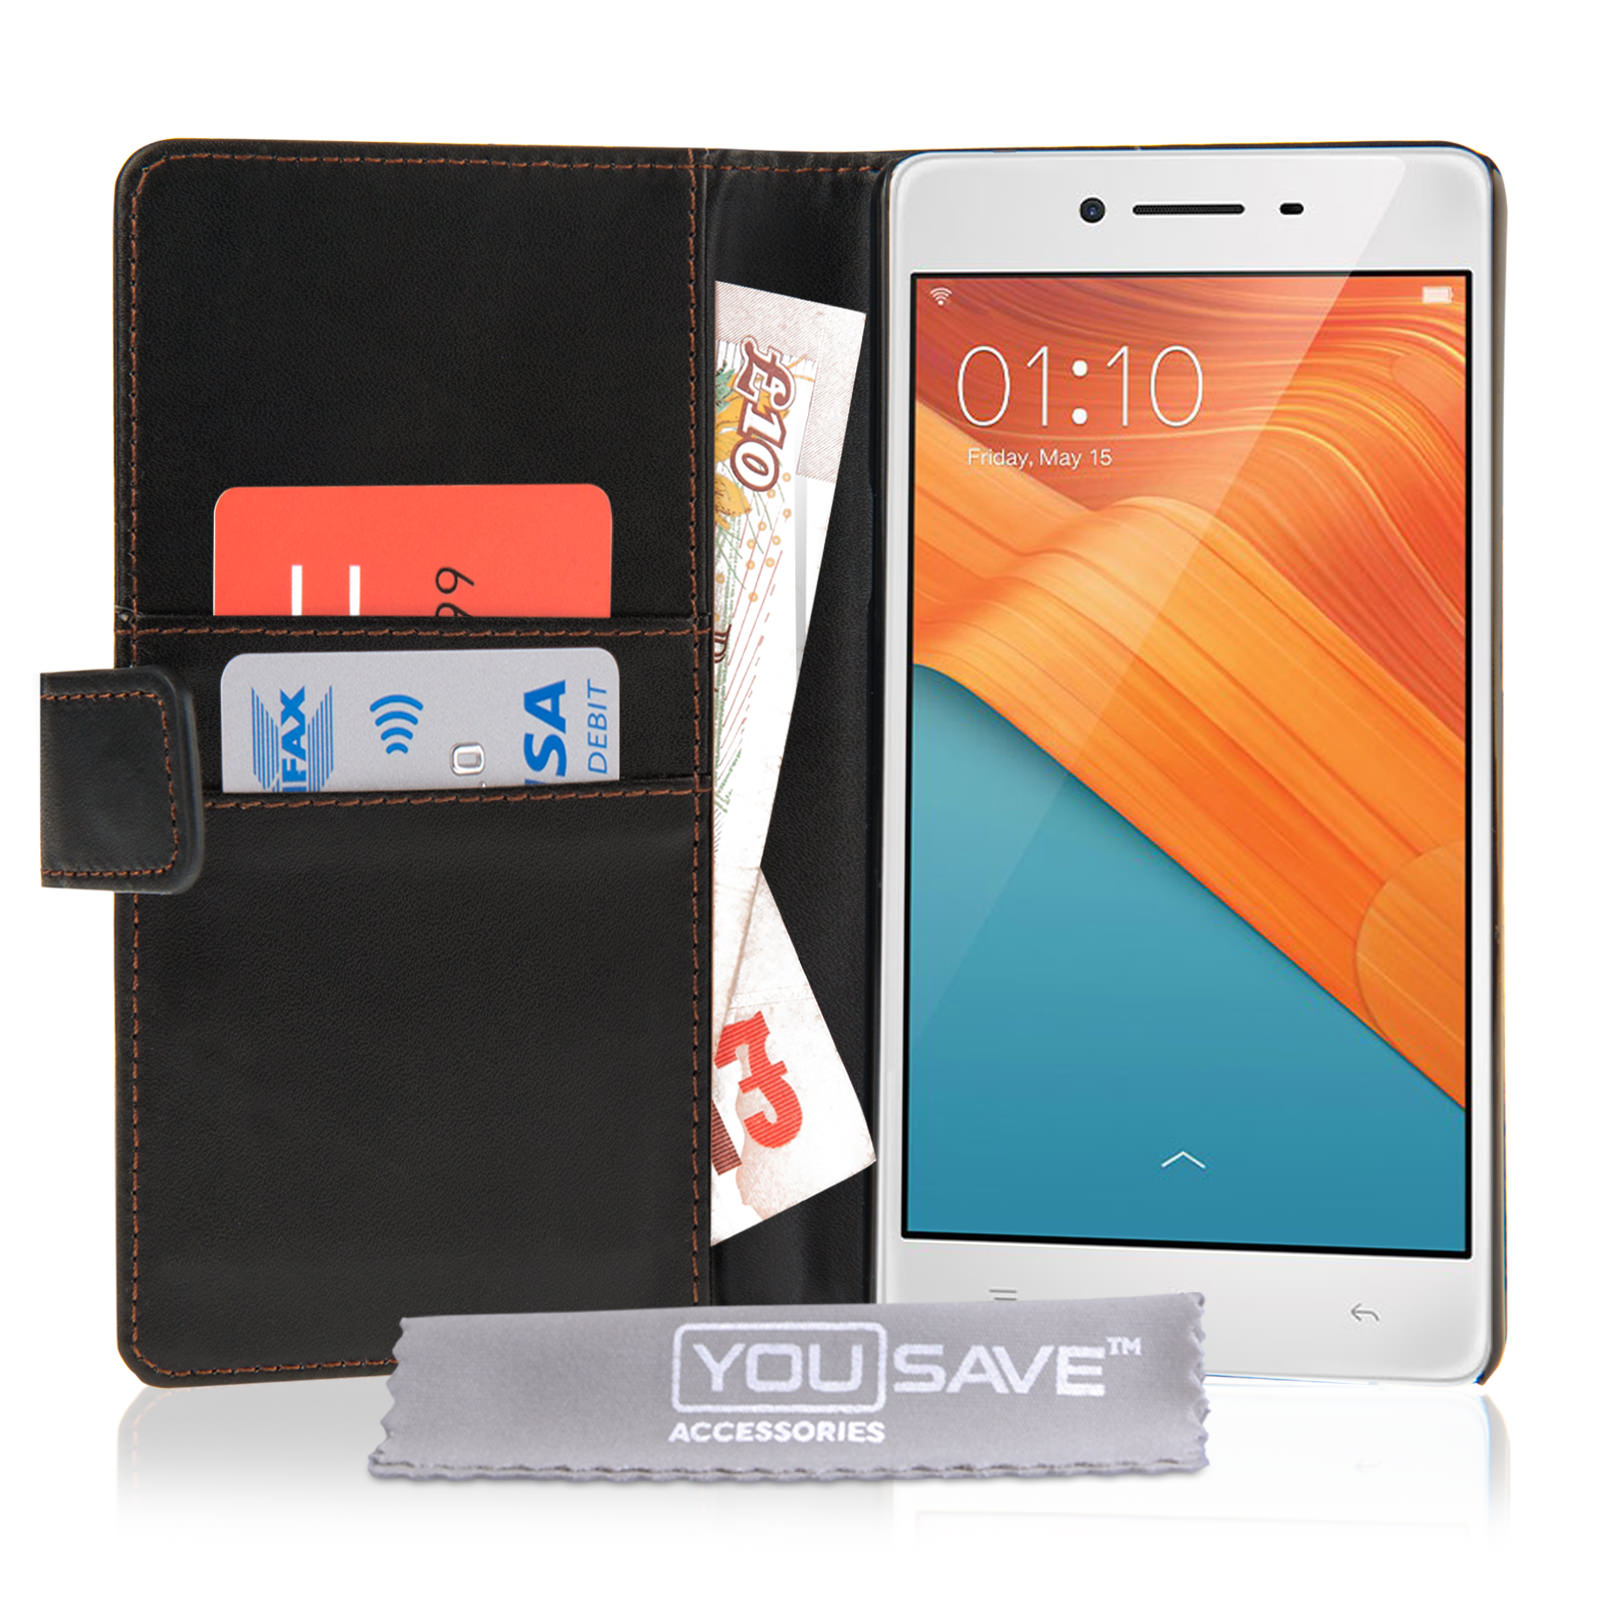 Yousave Accessories Oppo R7 Leather-Effect Wallet Case - Black